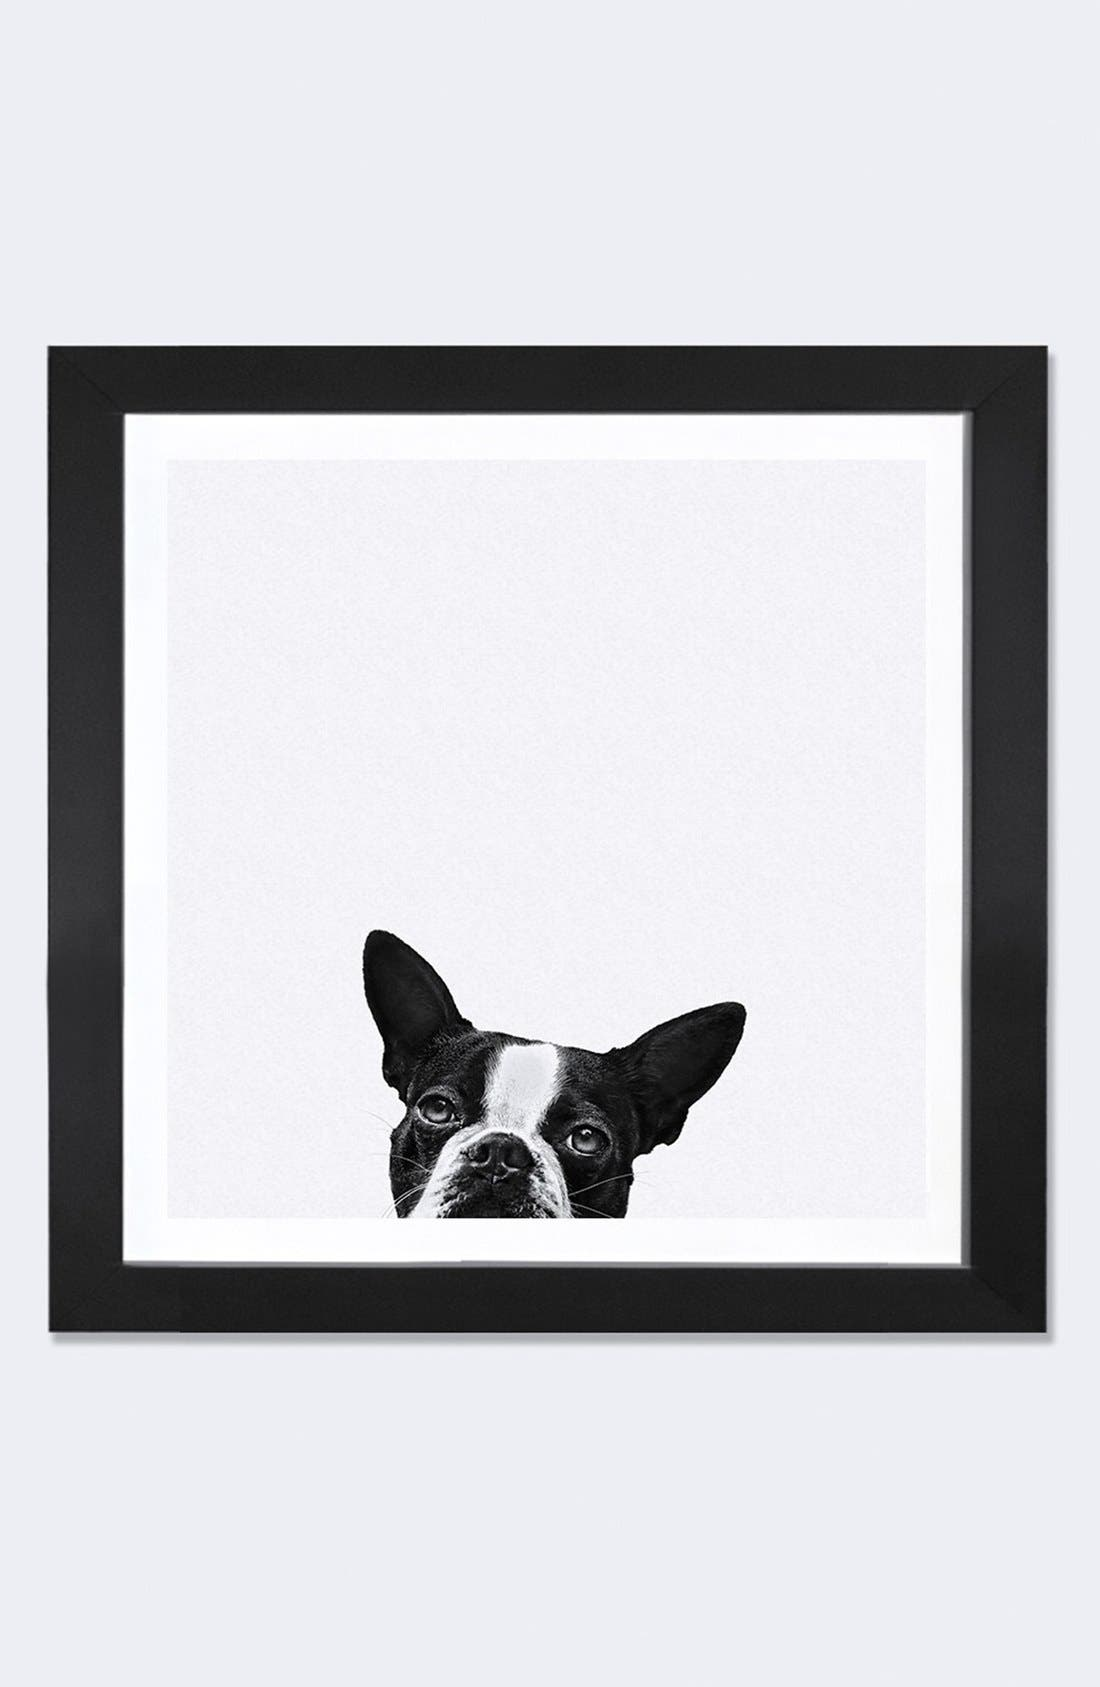 'Loyalty' Framed Fine Art Print,                             Main thumbnail 1, color,                             001